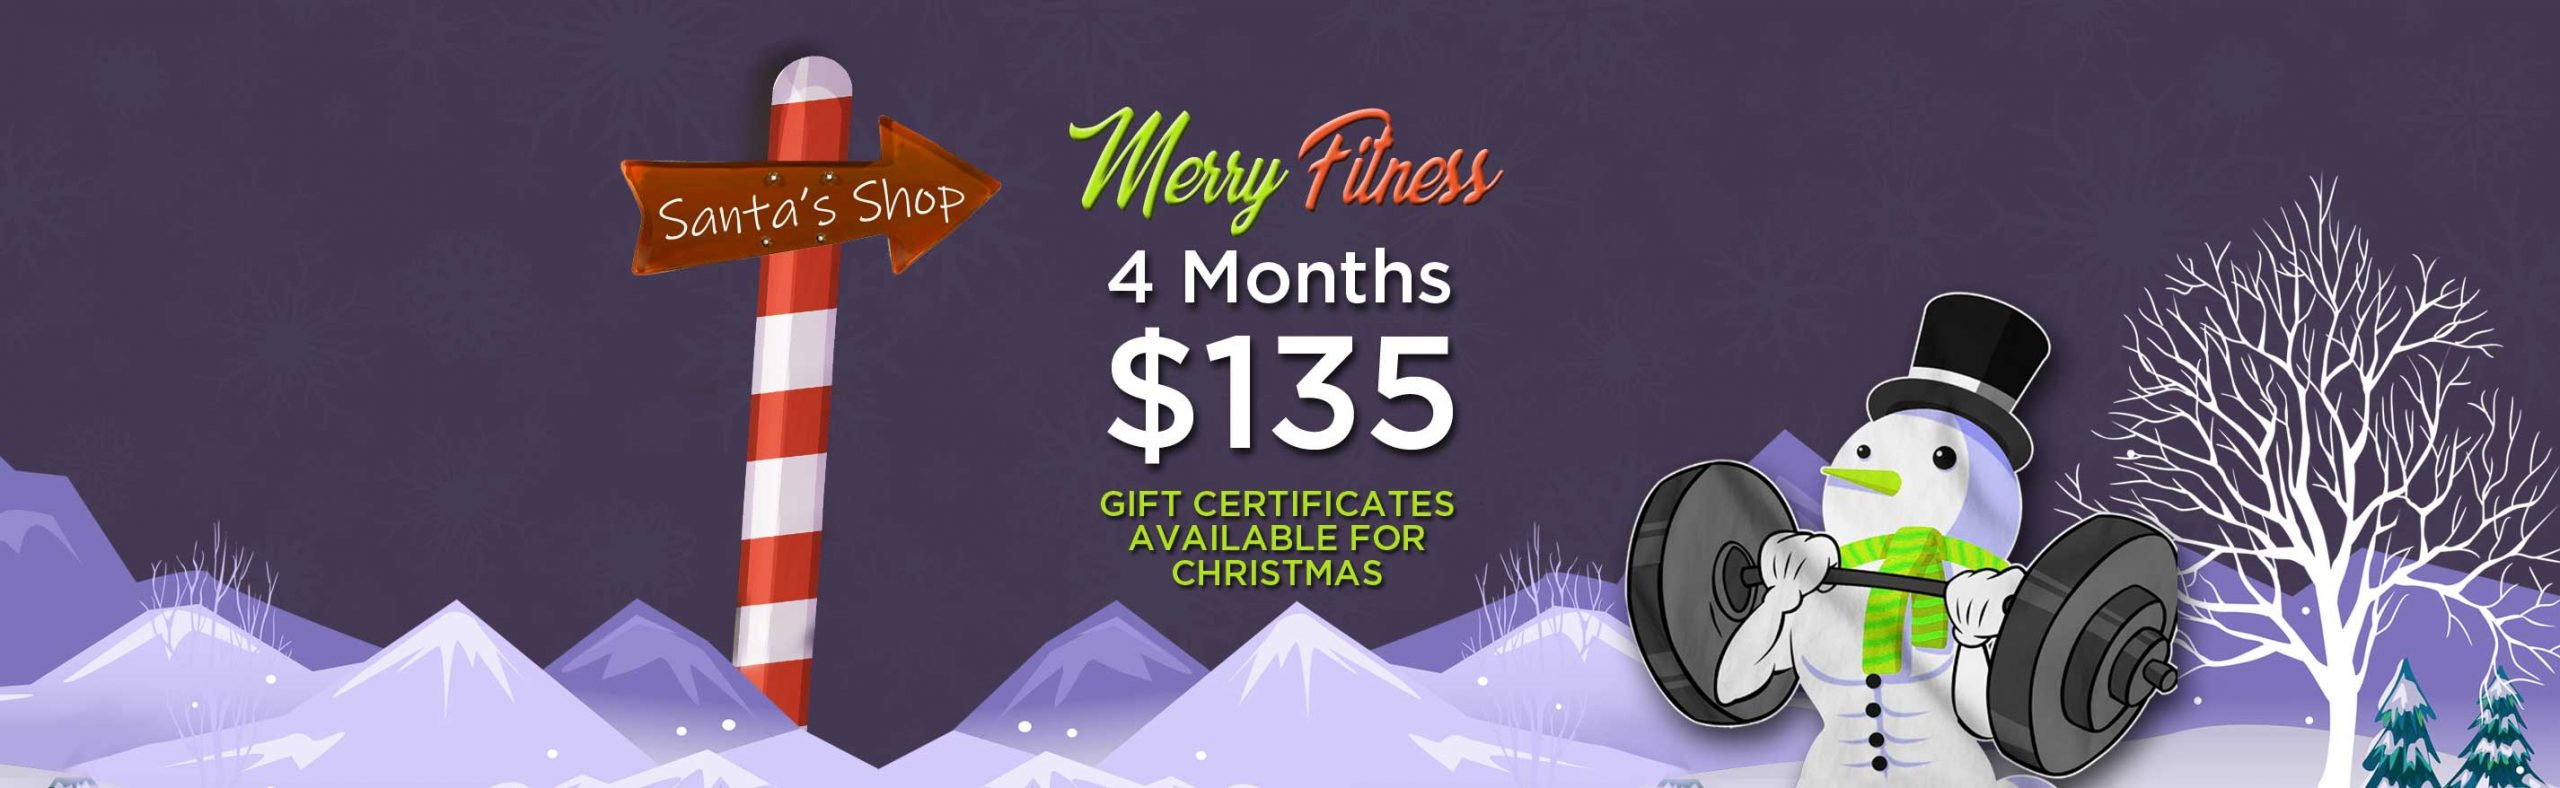 Merry Fitness Deal in Pembroke